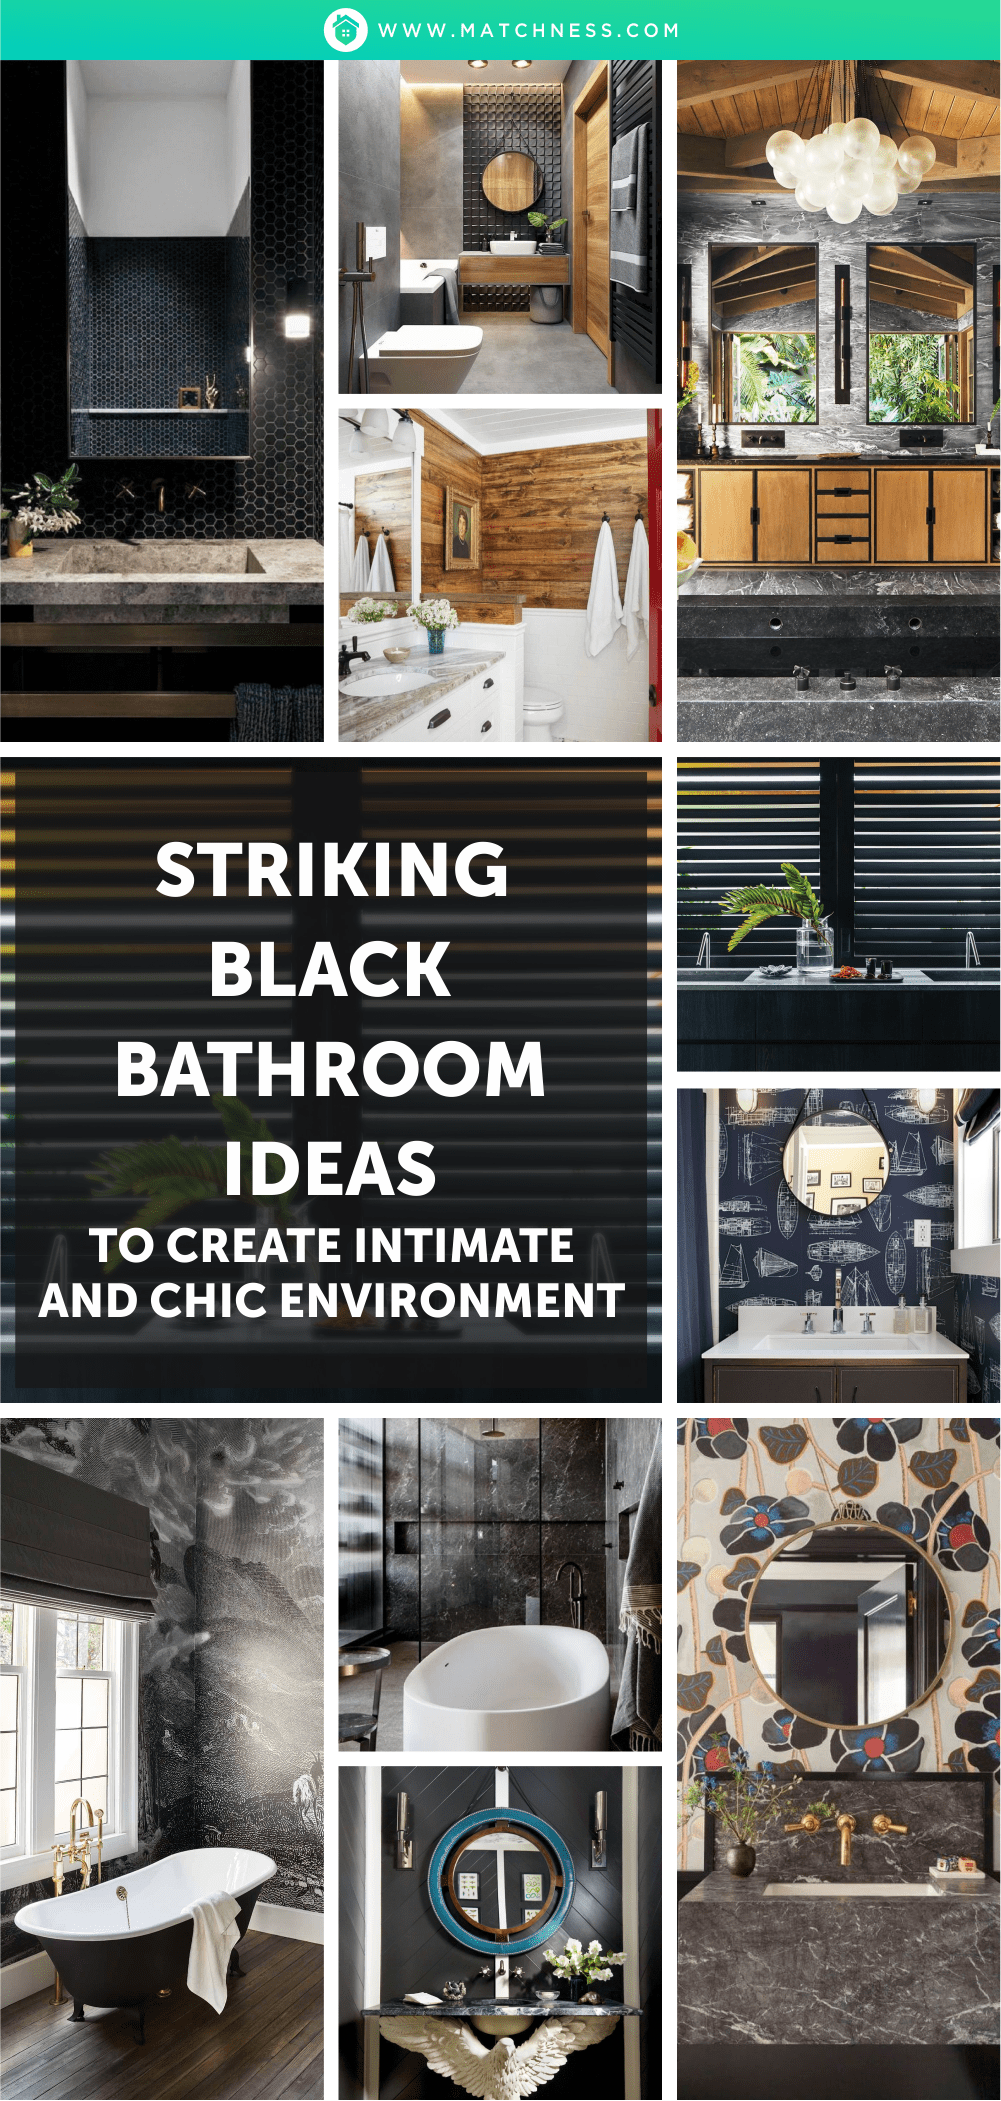 Striking-black-bathroom-ideas-to-create-intimate-and-chic-environment-1